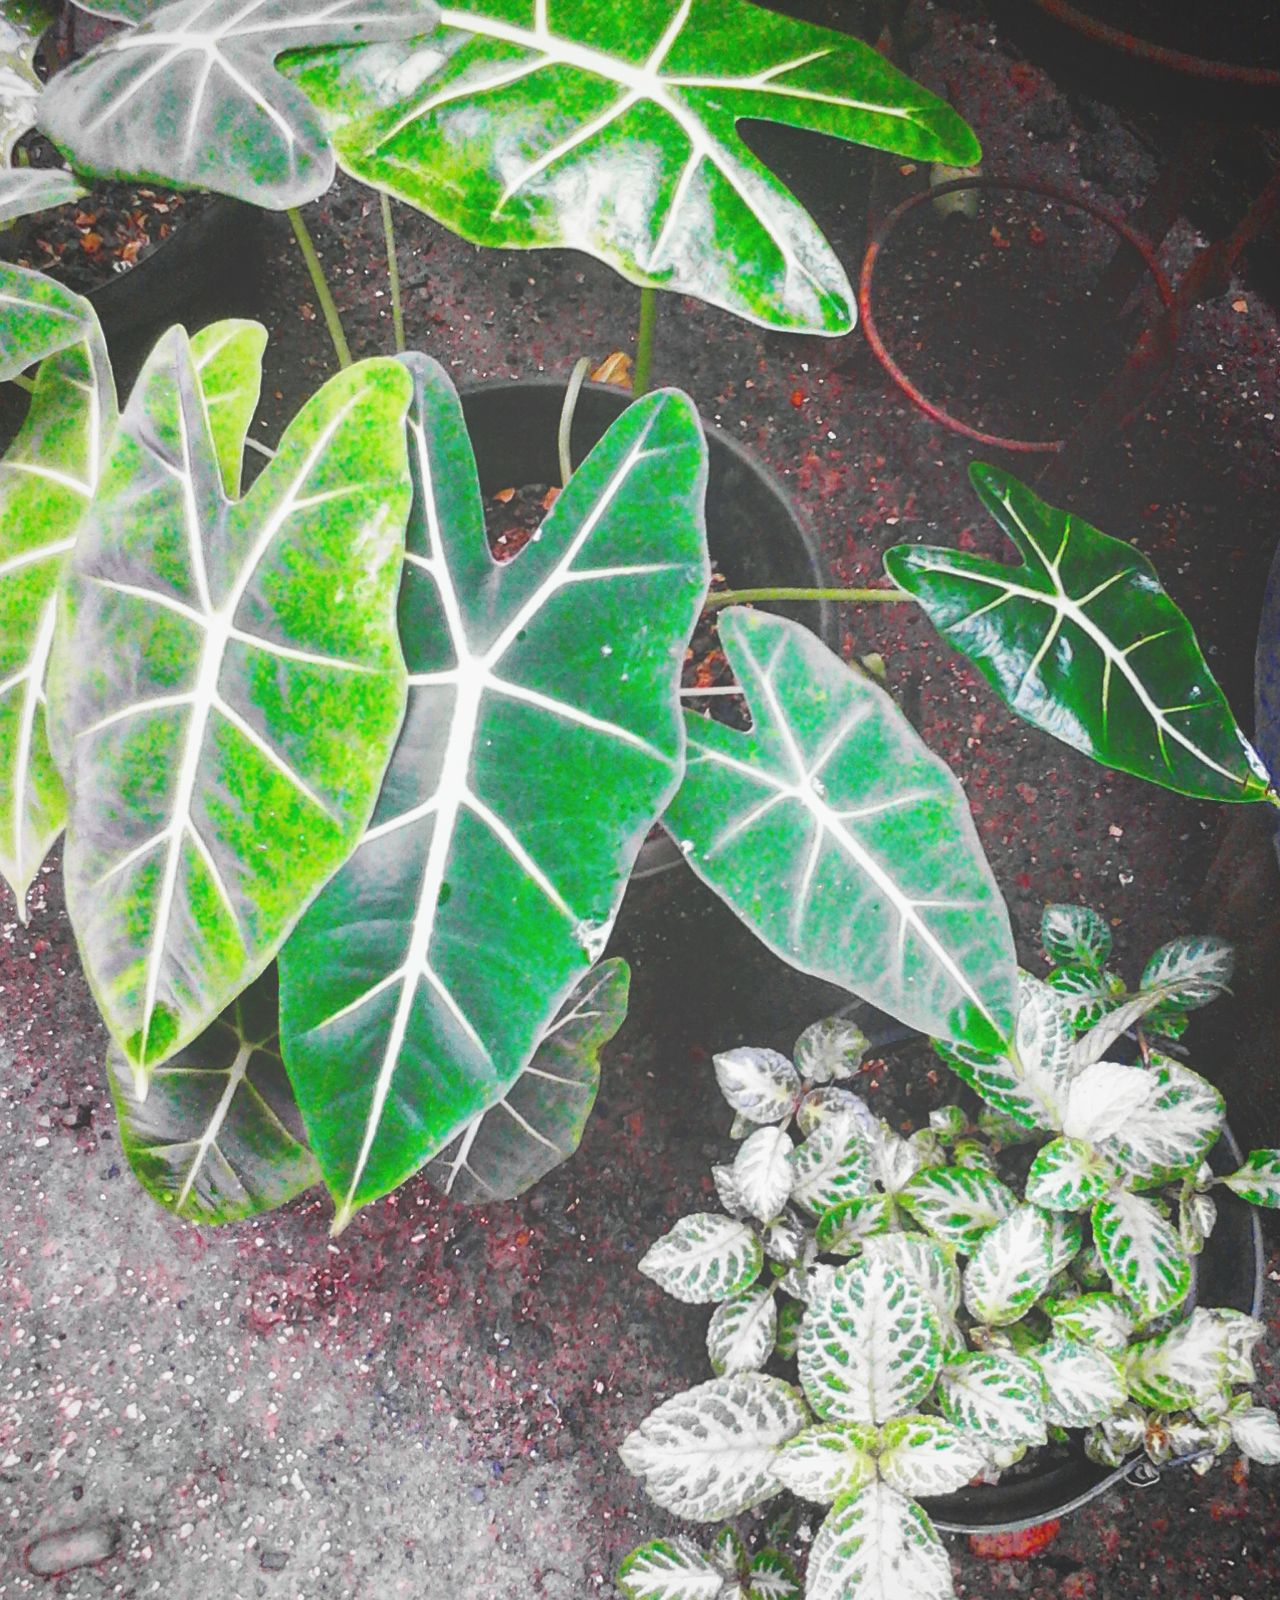 Plant Growth Leaf Nature No People Day Outdoors Green Color Cactus Close-up